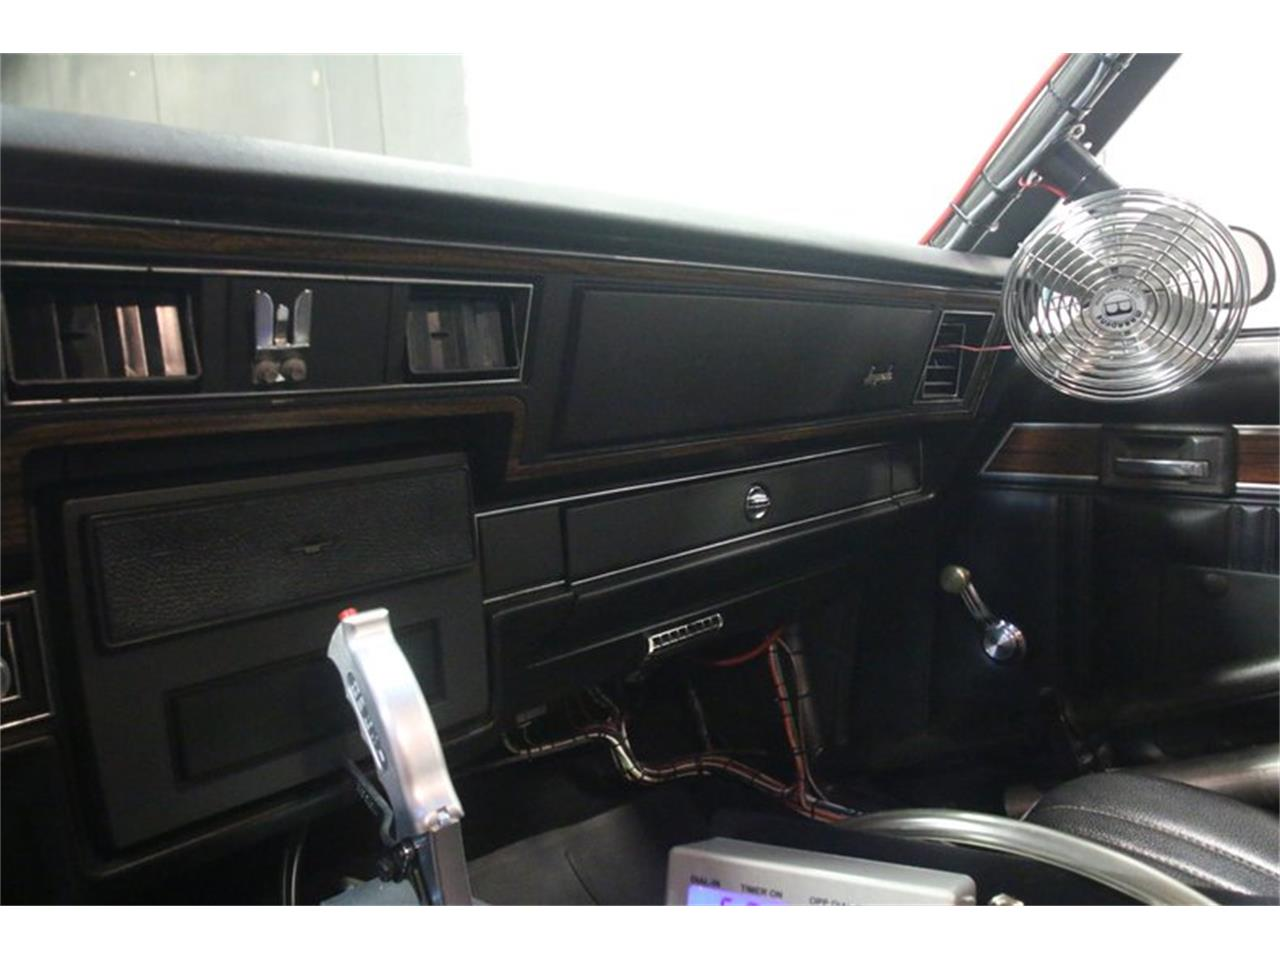 1979 Chevrolet Impala (CC-1082592) for sale in Lithia Springs, Georgia